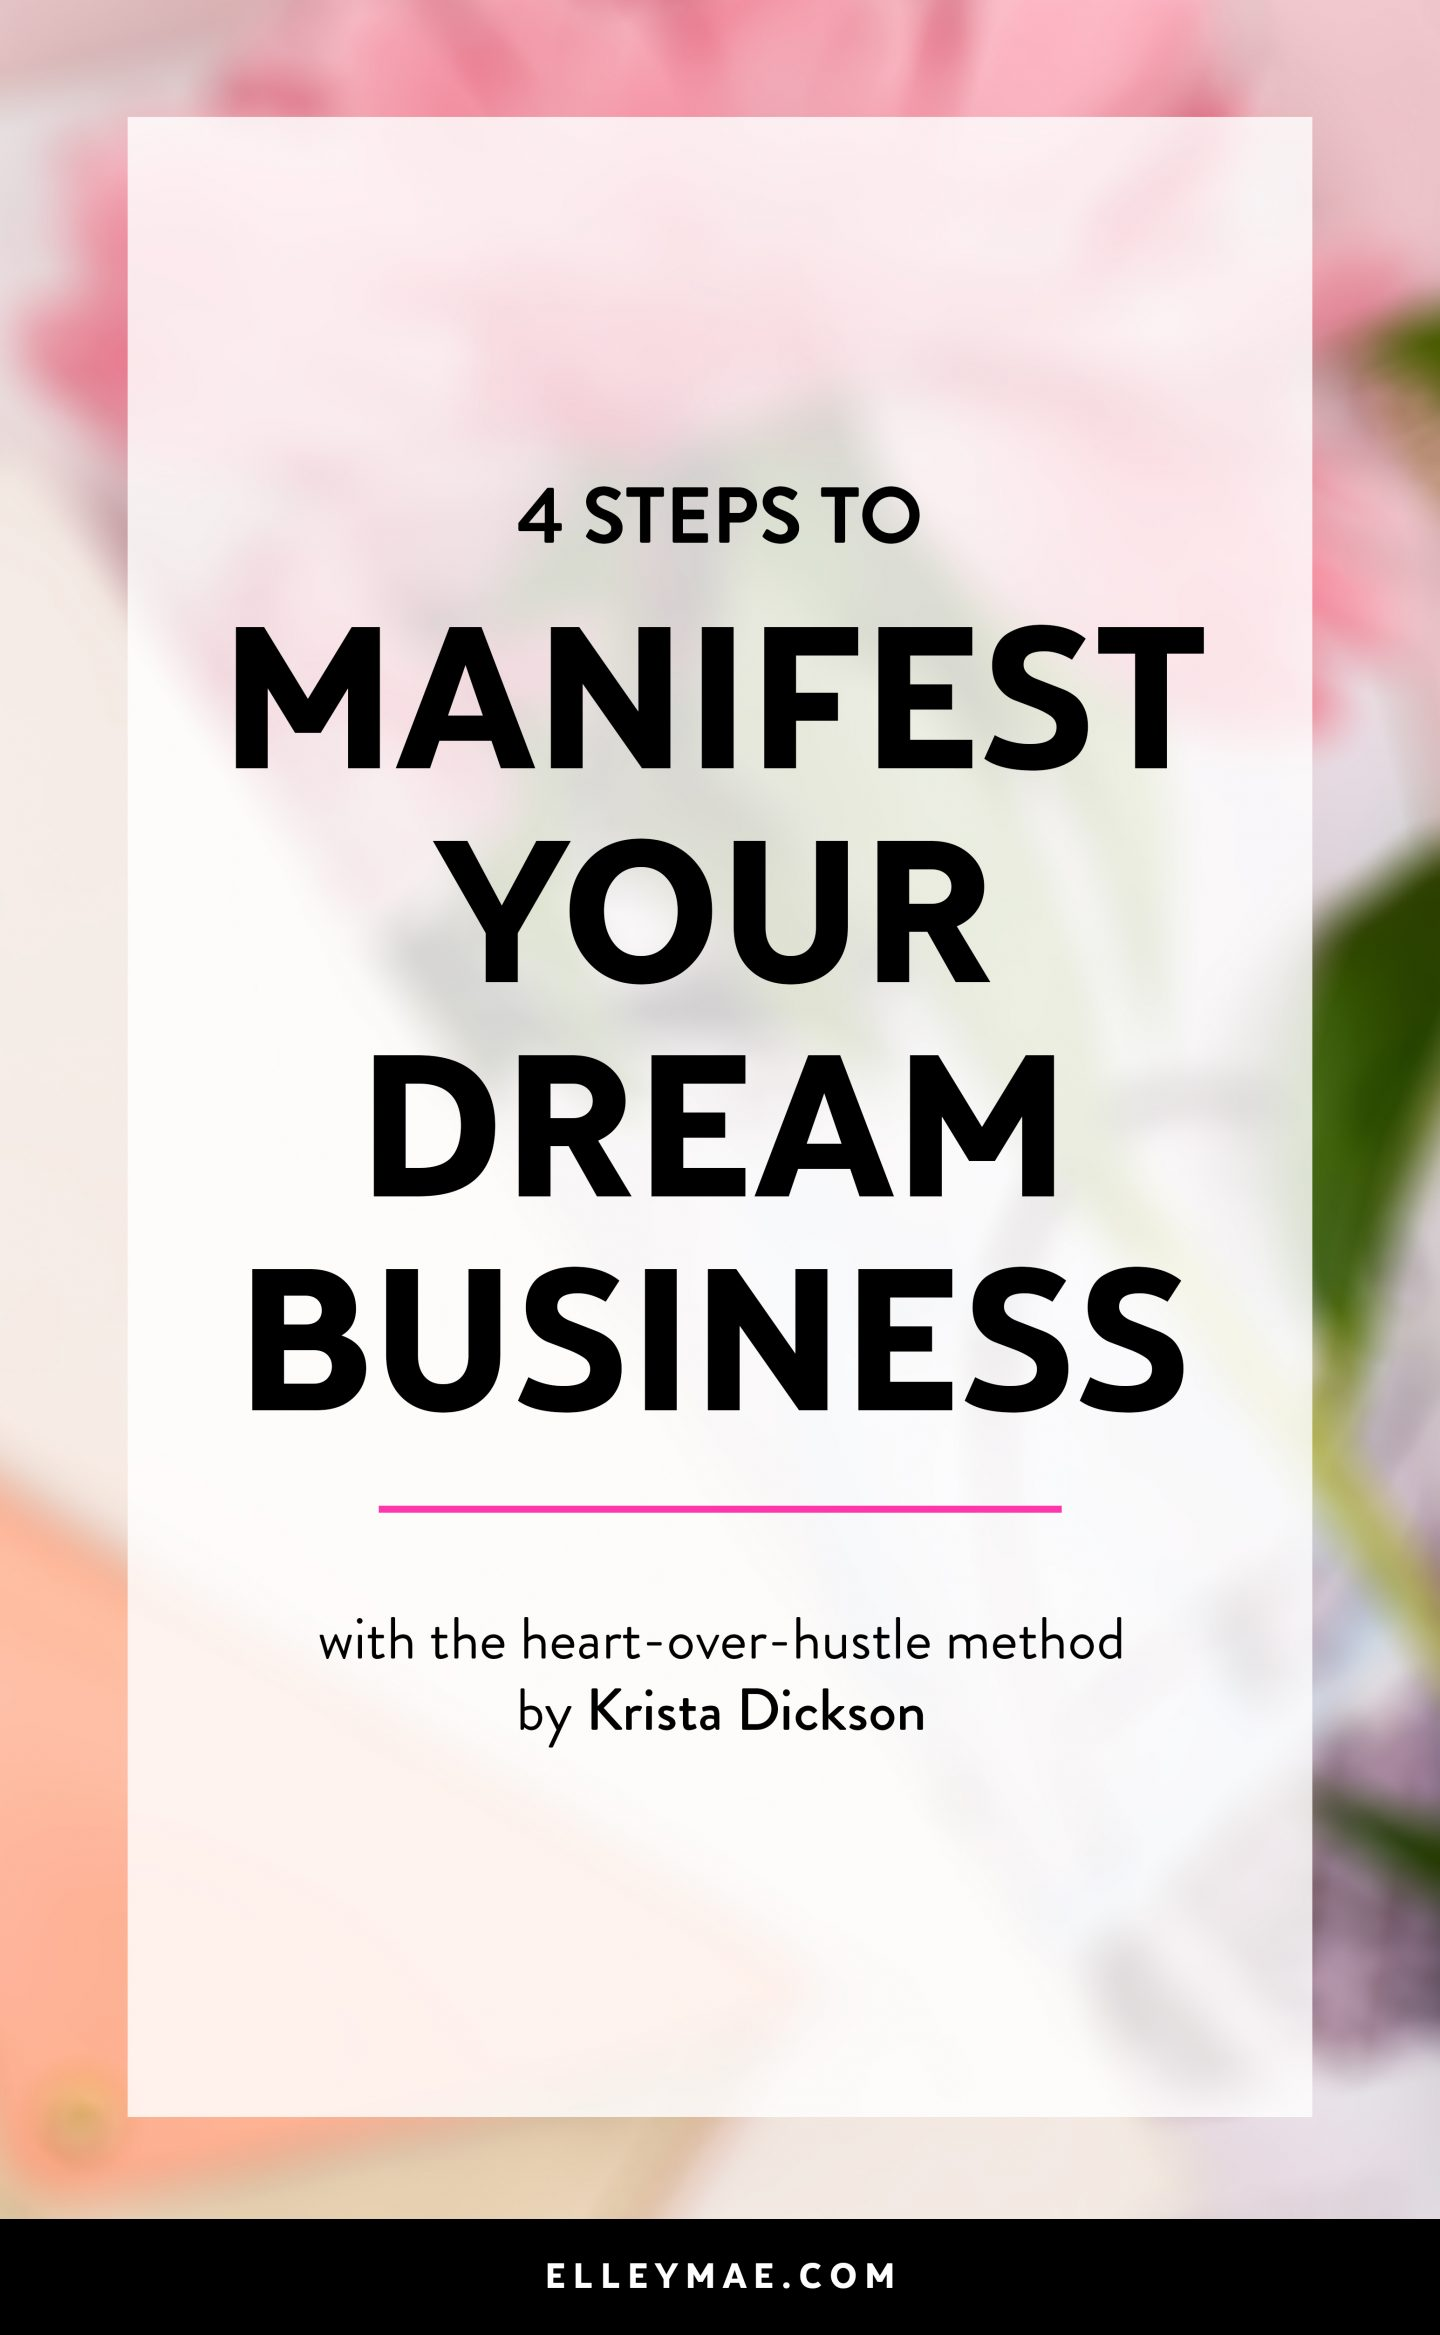 4 Steps to Manifest Your Dream Business   Today's guest post by Krista Dickson from kristadickson.com is a game-changer when it comes to manifesting your dream business & manifesting dream clients!   #manifesting #lawofattraction #businesscoach   Law of Attraction, Manifest Money, Money Affirmations, Affirmations, Entrepreneur, Spiritual, Spiritual Business, Soulful Entrepreneur, Soulful Business, Manifest Clients, Dream Clients, Make Money Online, Online Business, Business Method, Business Model, Blogging, Social Media, Entrepreneur Mindset